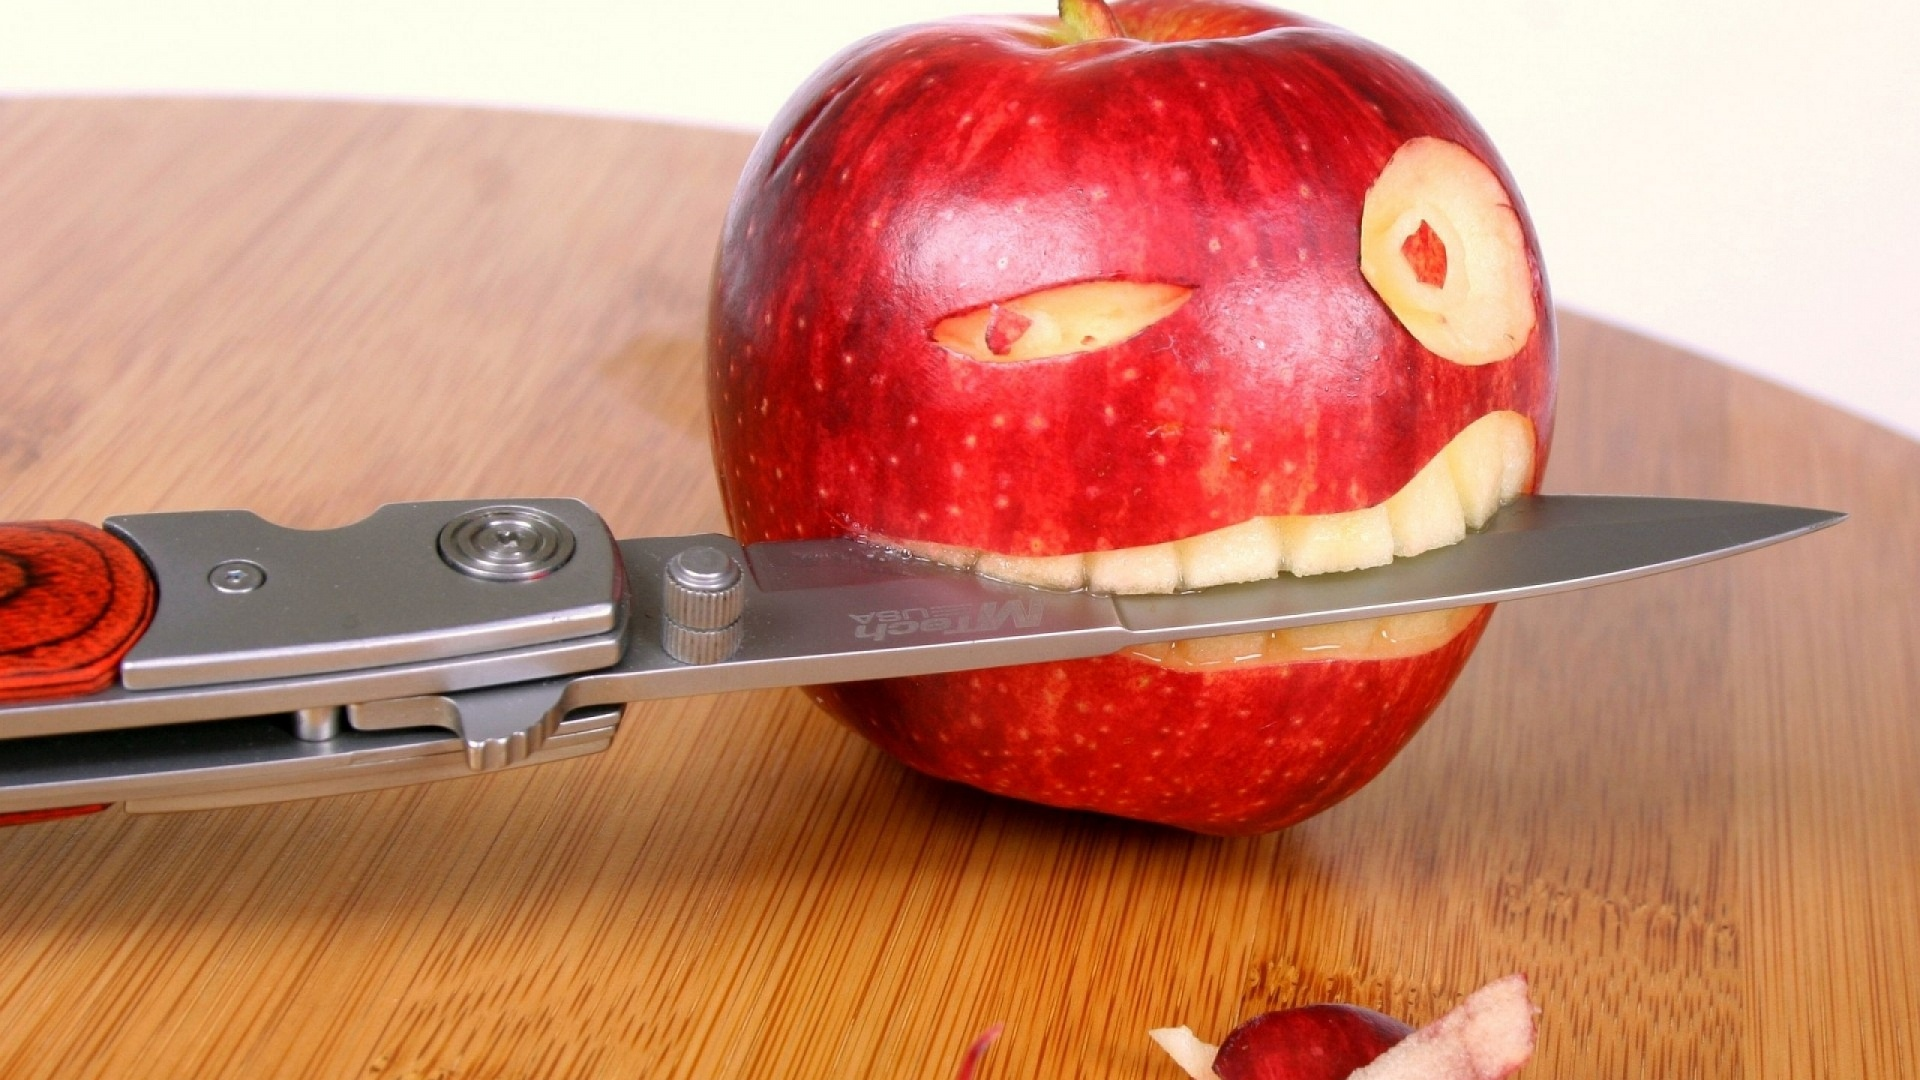 Apple and knife arts funny wallpaper